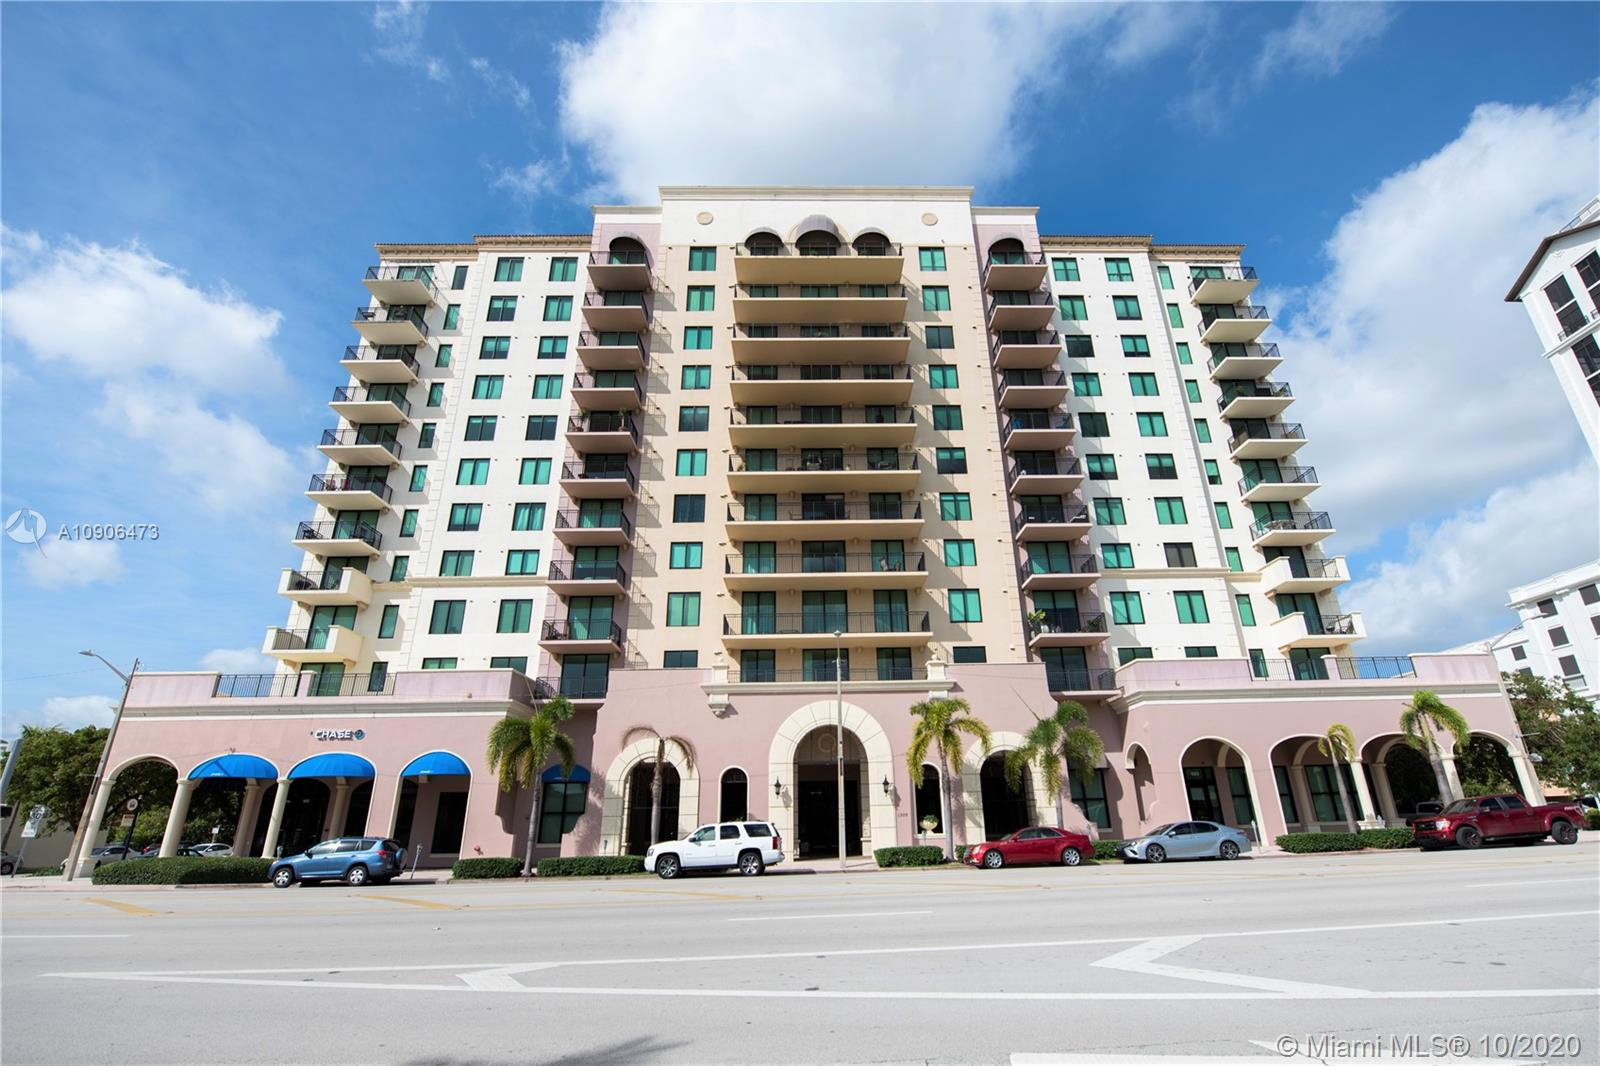 GORGEOUS CONDO IN CORAL GABLES, ONLY BLOCKS OFF MIRACLE MILE AND RIGHT ON PONCE DE LEON. BEAUTIFUL VIEW TO DOWNTOWN BRICKELL. INCLUDES WOOD CABINETS IN KITCHEN AND BATHROOMS, GRANITE COUNTER TOPS IN KITCHEN, MARBLE COUNTER TOPS IN BATHROOMS, ALL STAINLESS  STEEL KITCHEN APPLIANCES, LAMINATED FLOORS IN BEDROOMS IMPACT WINDOWS. 2 PARKING SPACES (ASSIGNED).